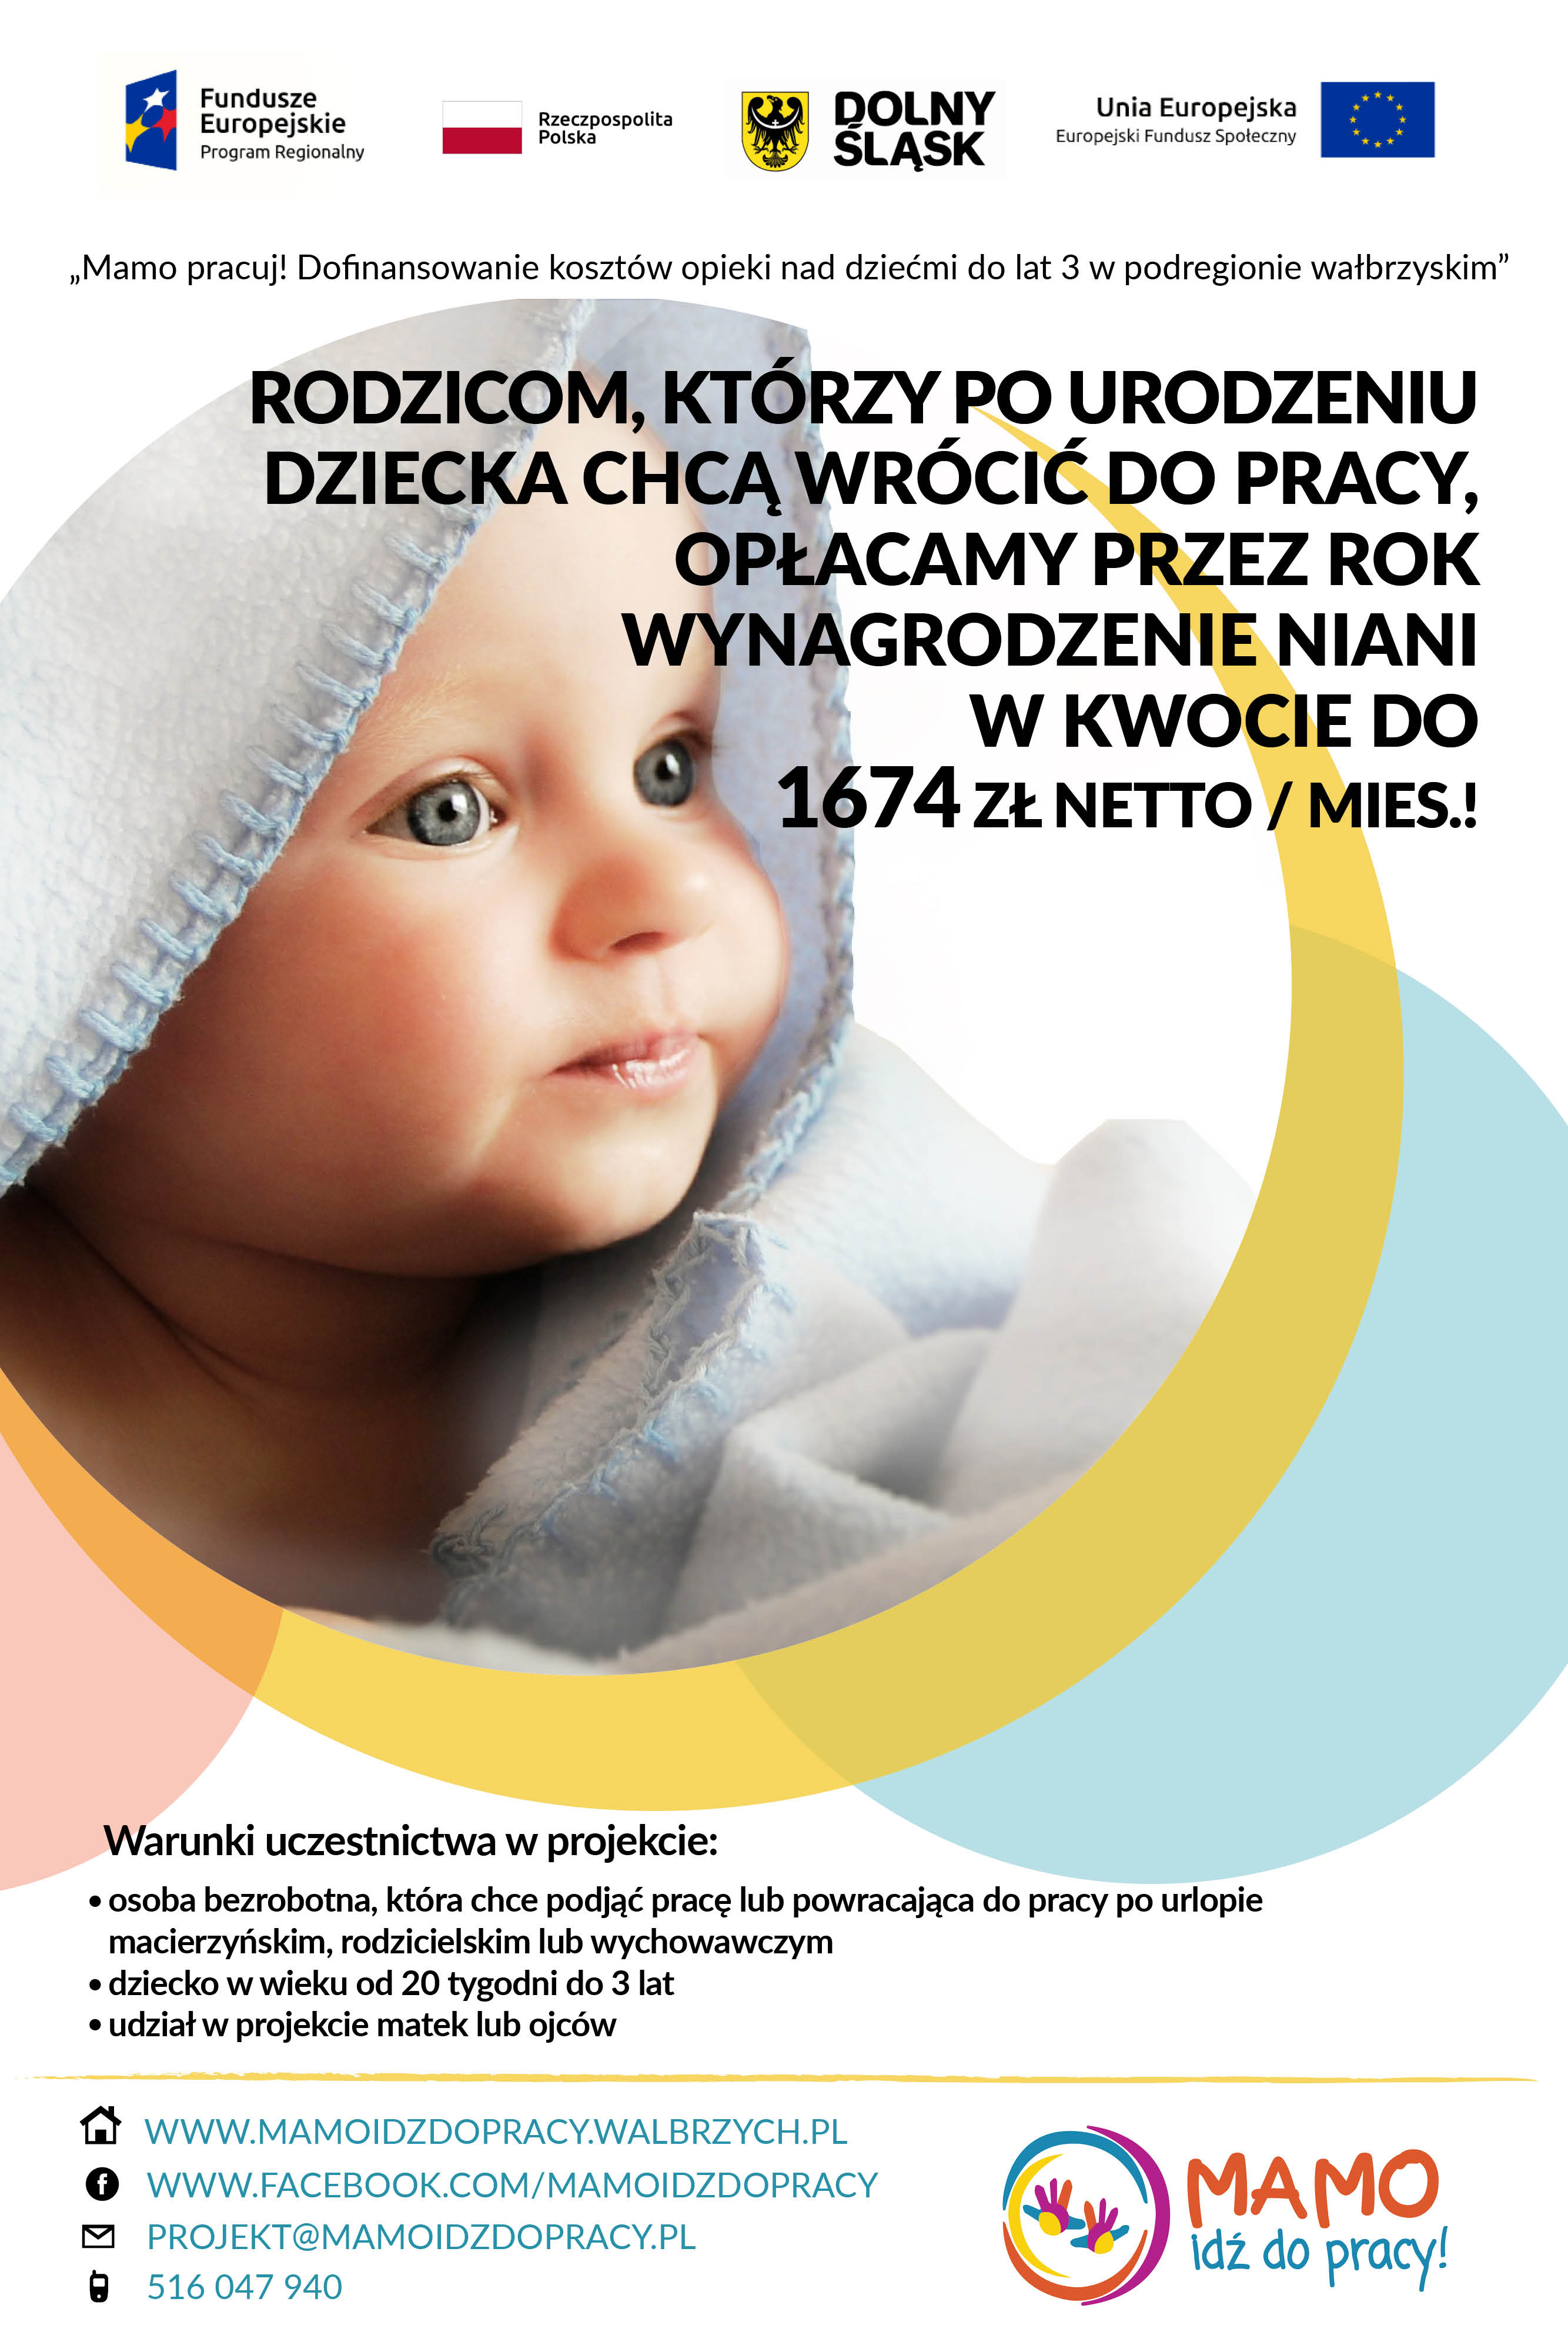 11.06.2018 Program Mamo pracuj